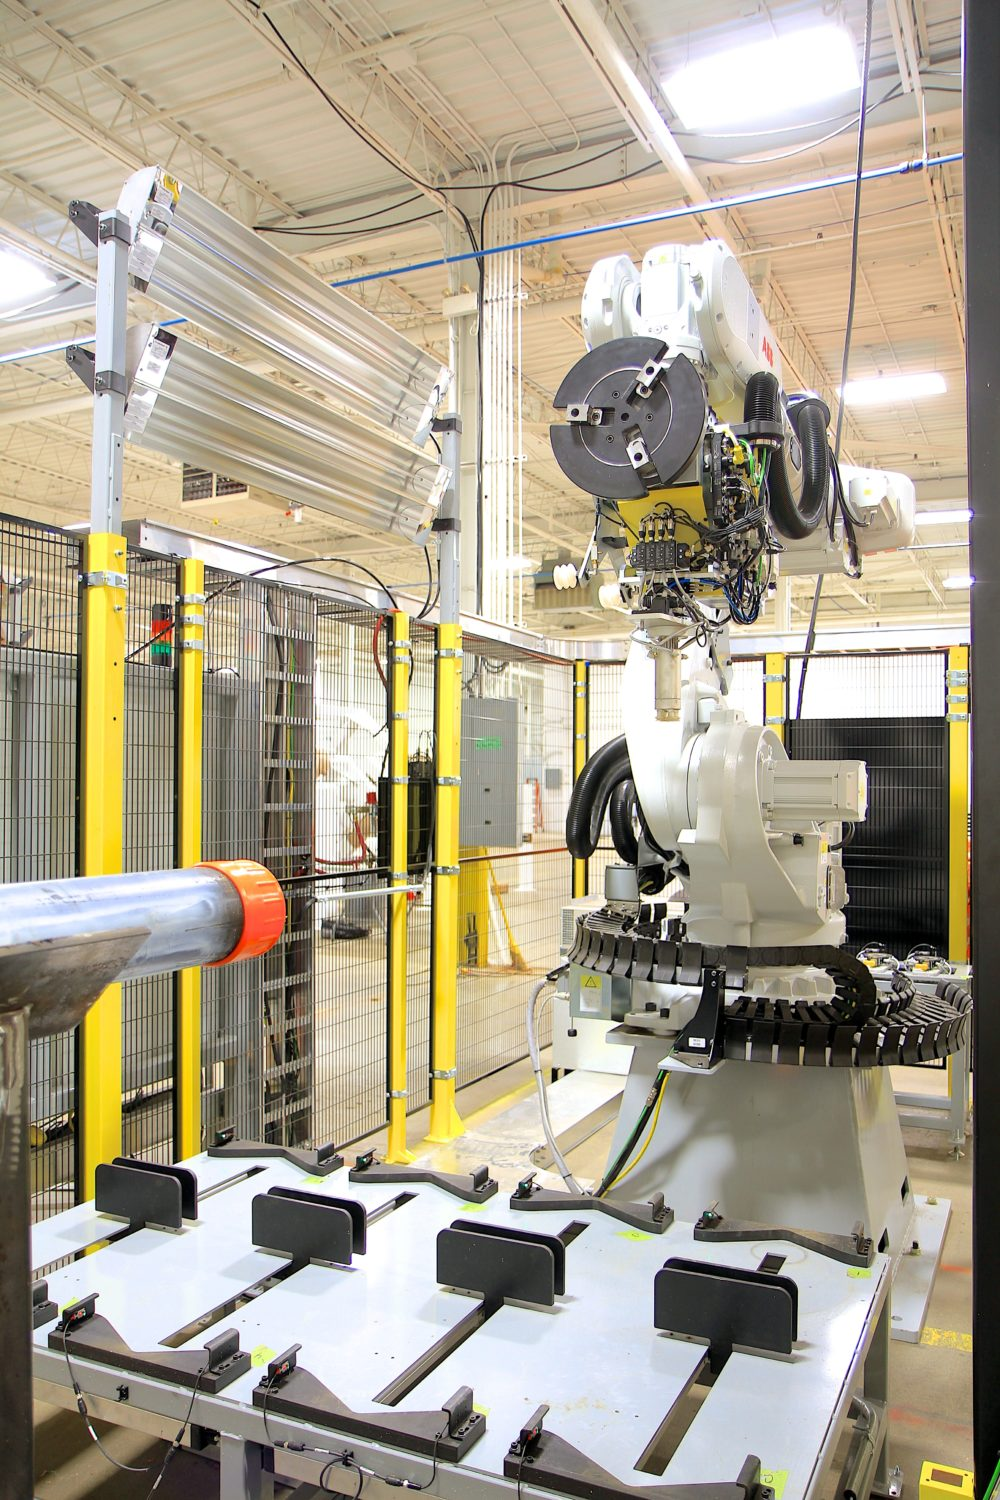 Tube & Pipe Robotic System in Cell